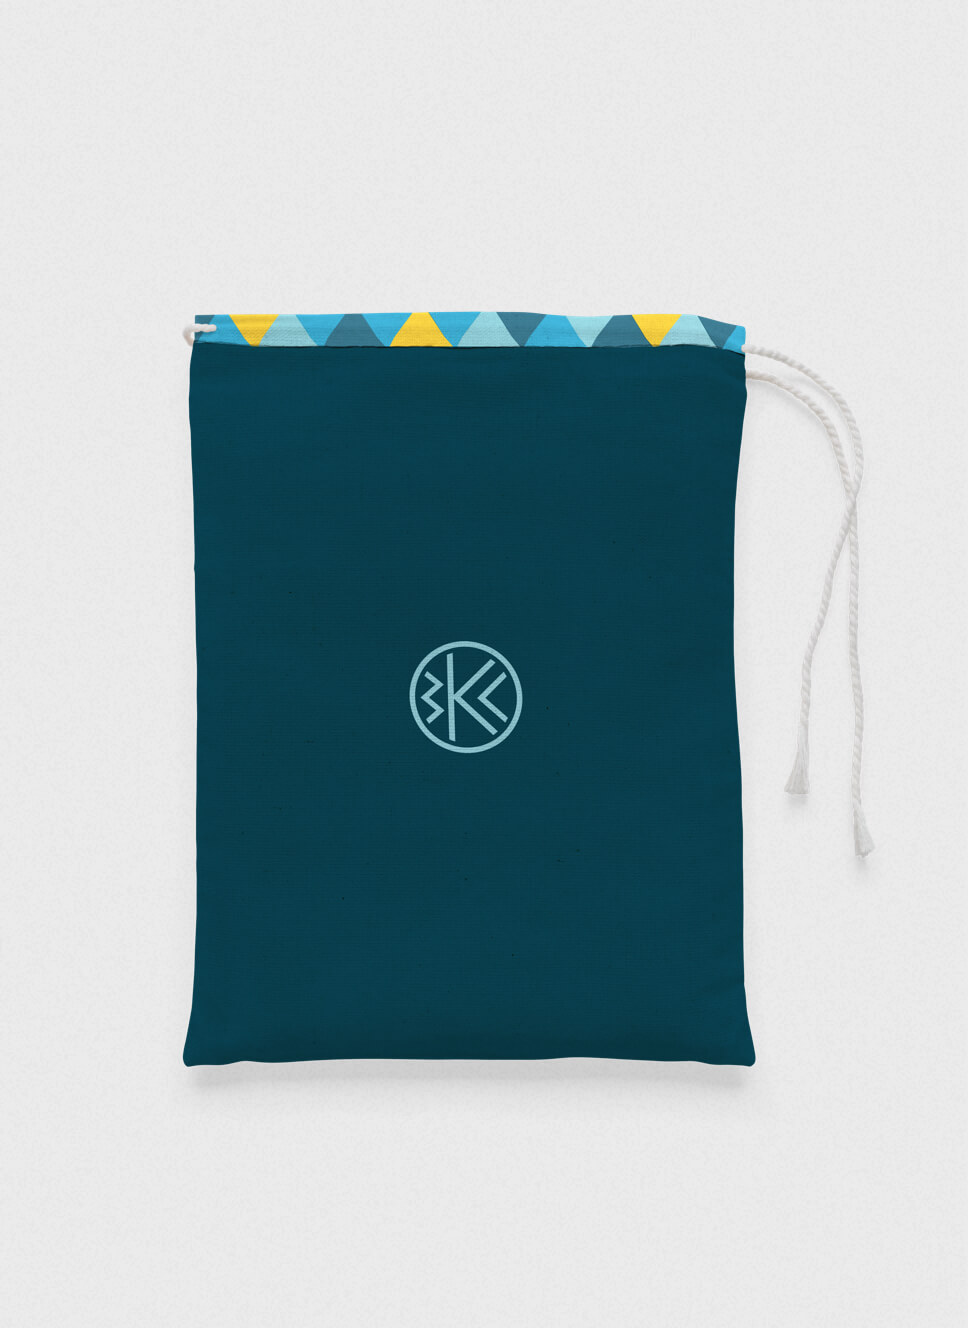 Belau Kanu Club small bag with triangle pattern and logo printed on the front